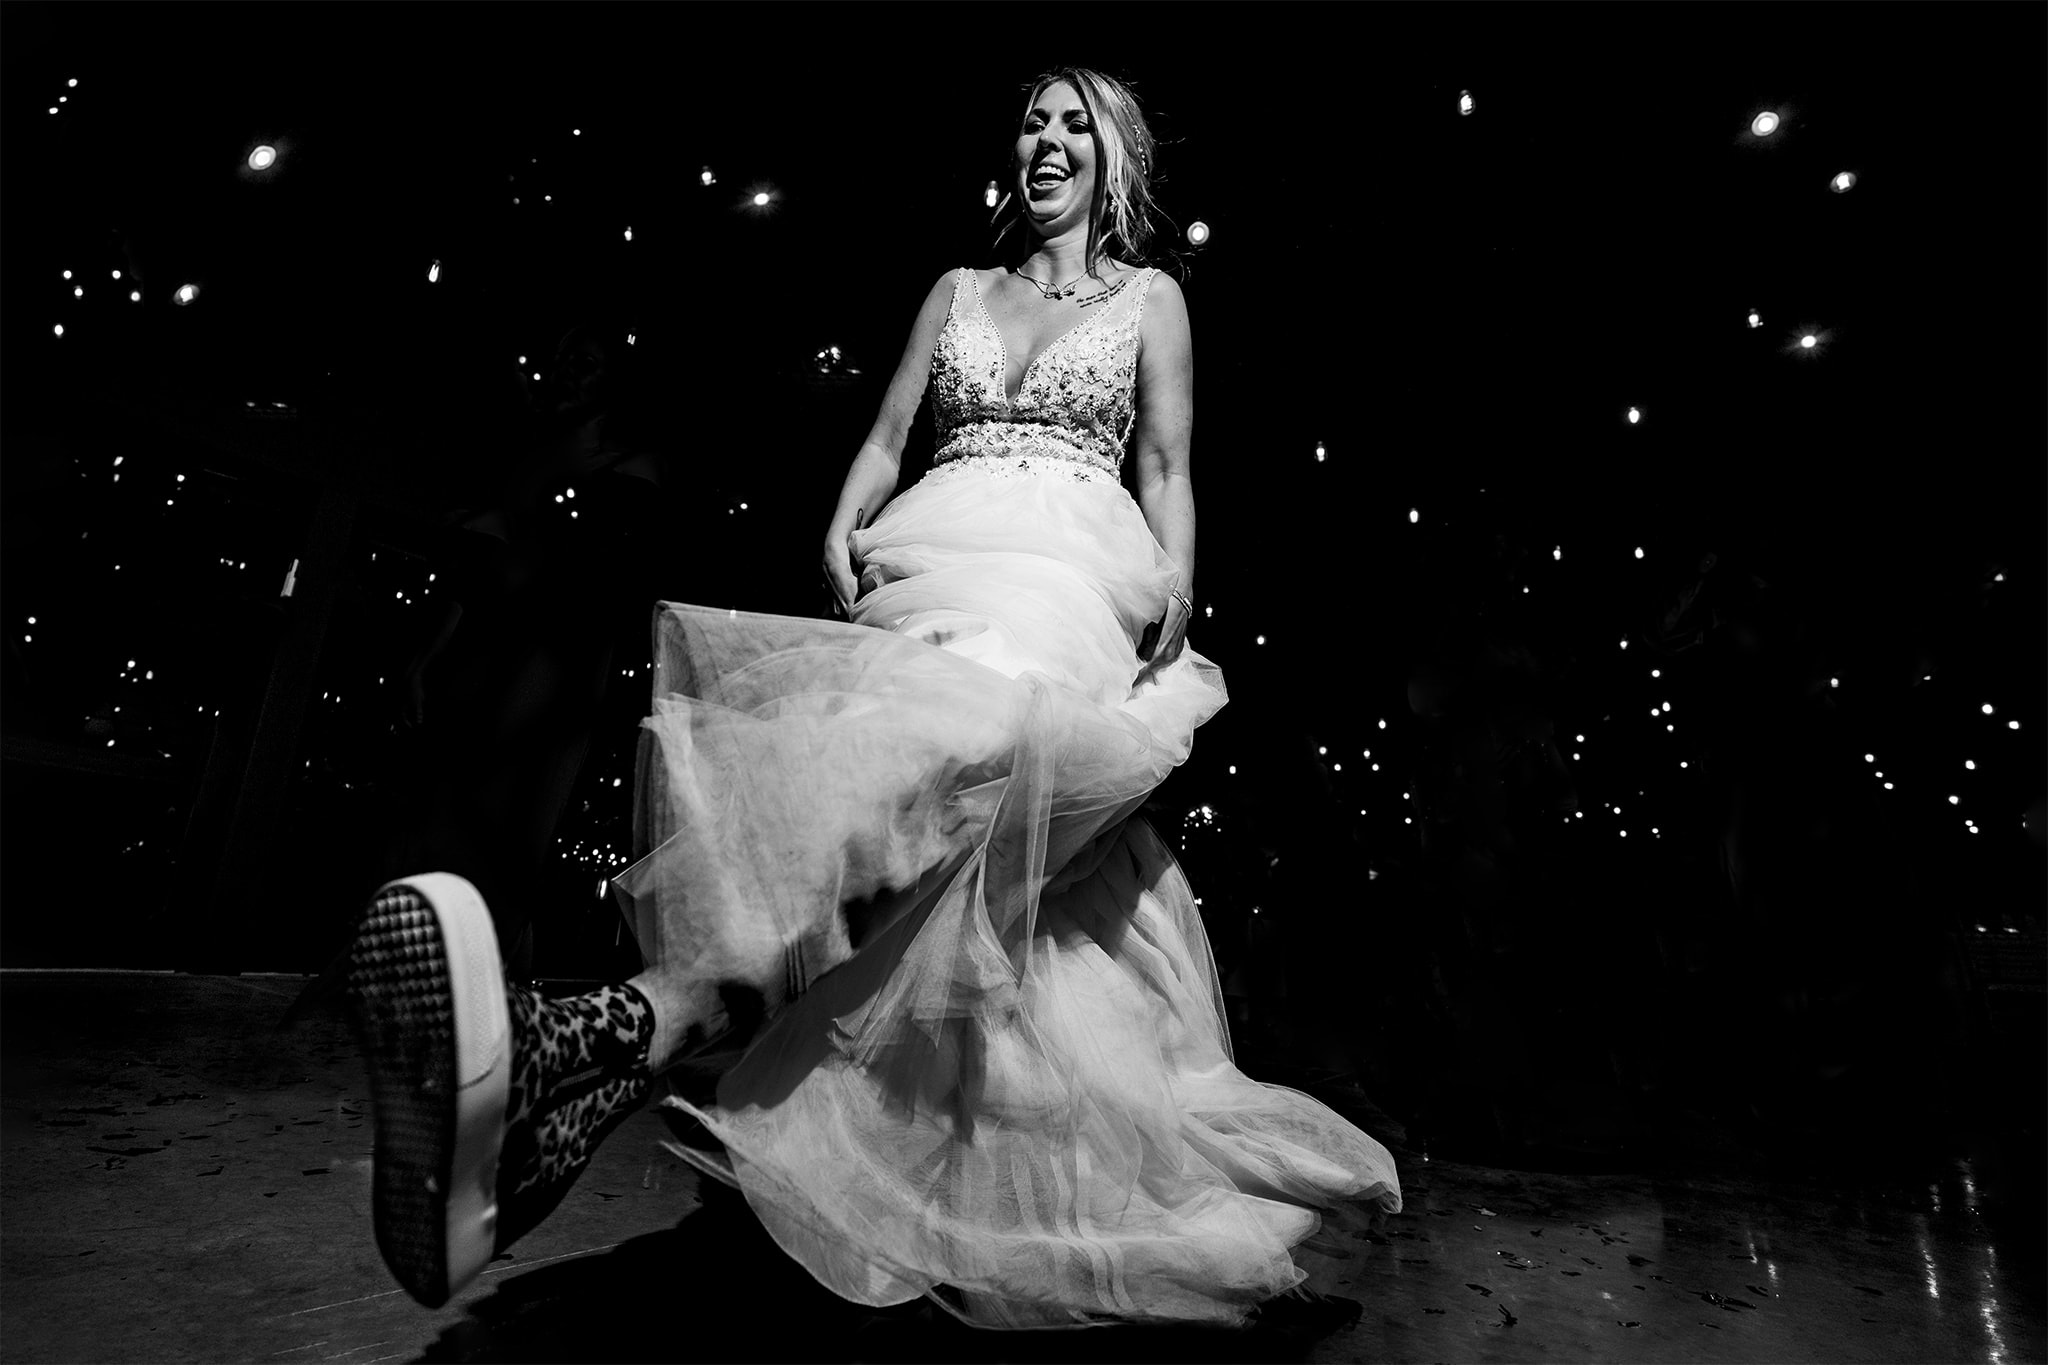 Bride dancing on dance floor